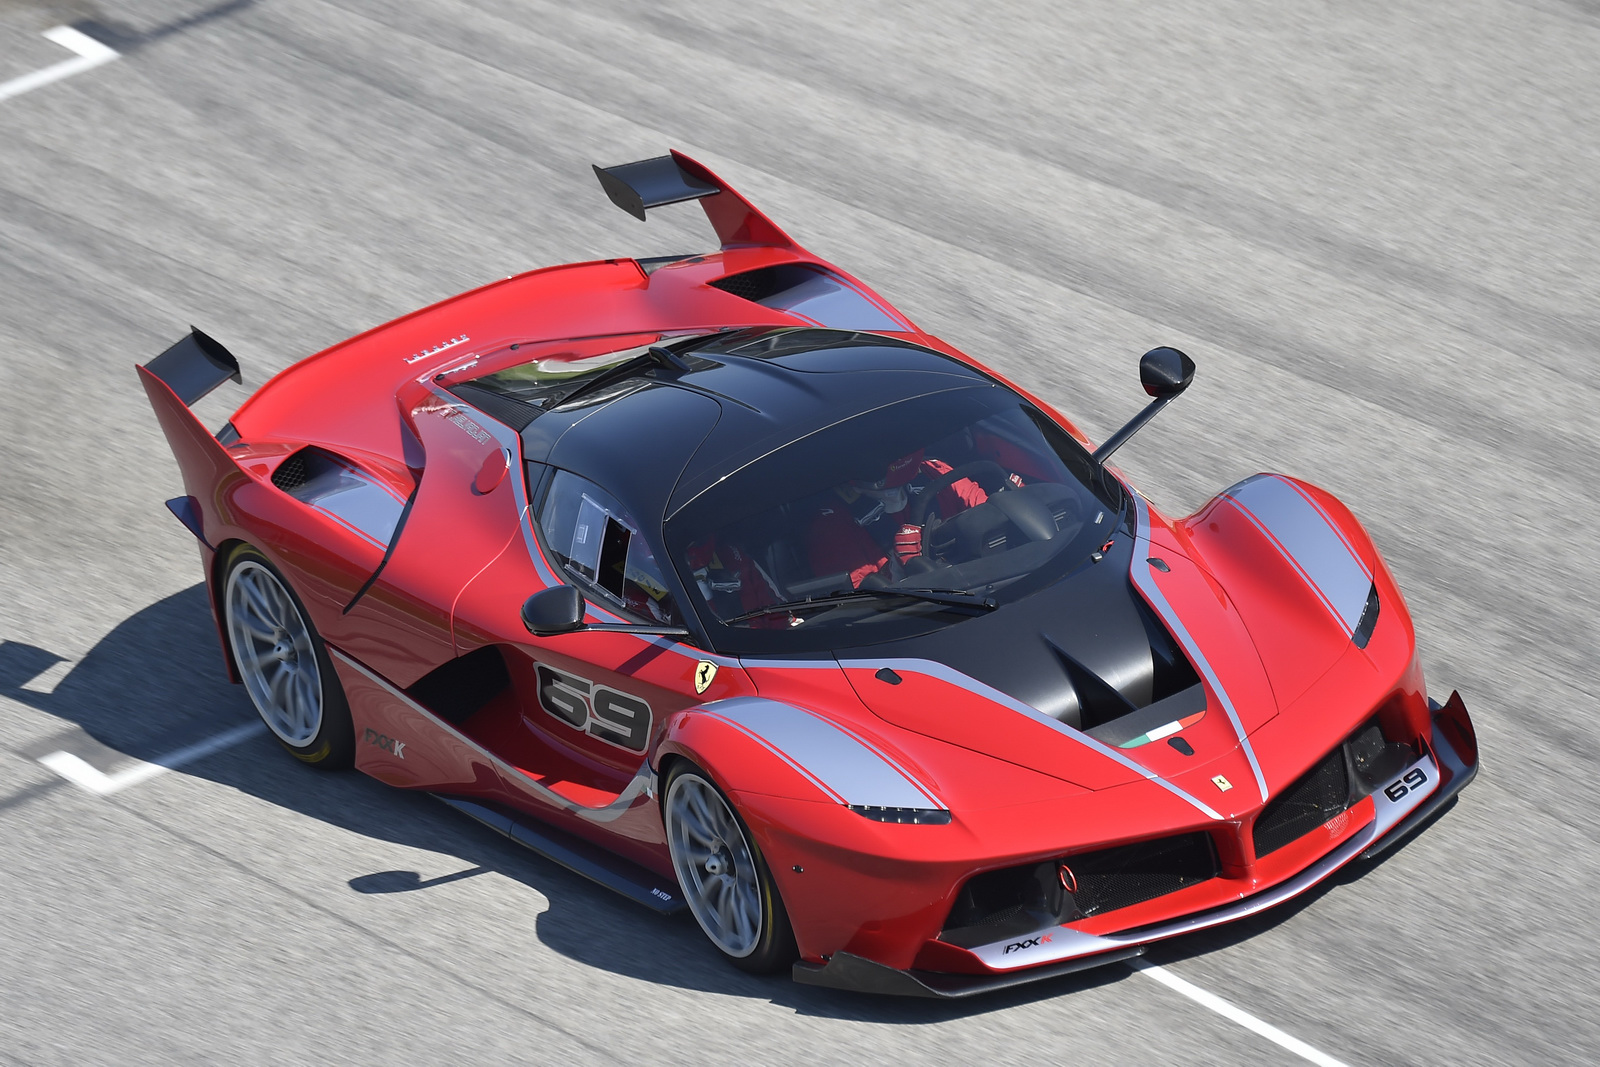 potent laferrari fxx k completes testing at imola gtspirit. Black Bedroom Furniture Sets. Home Design Ideas